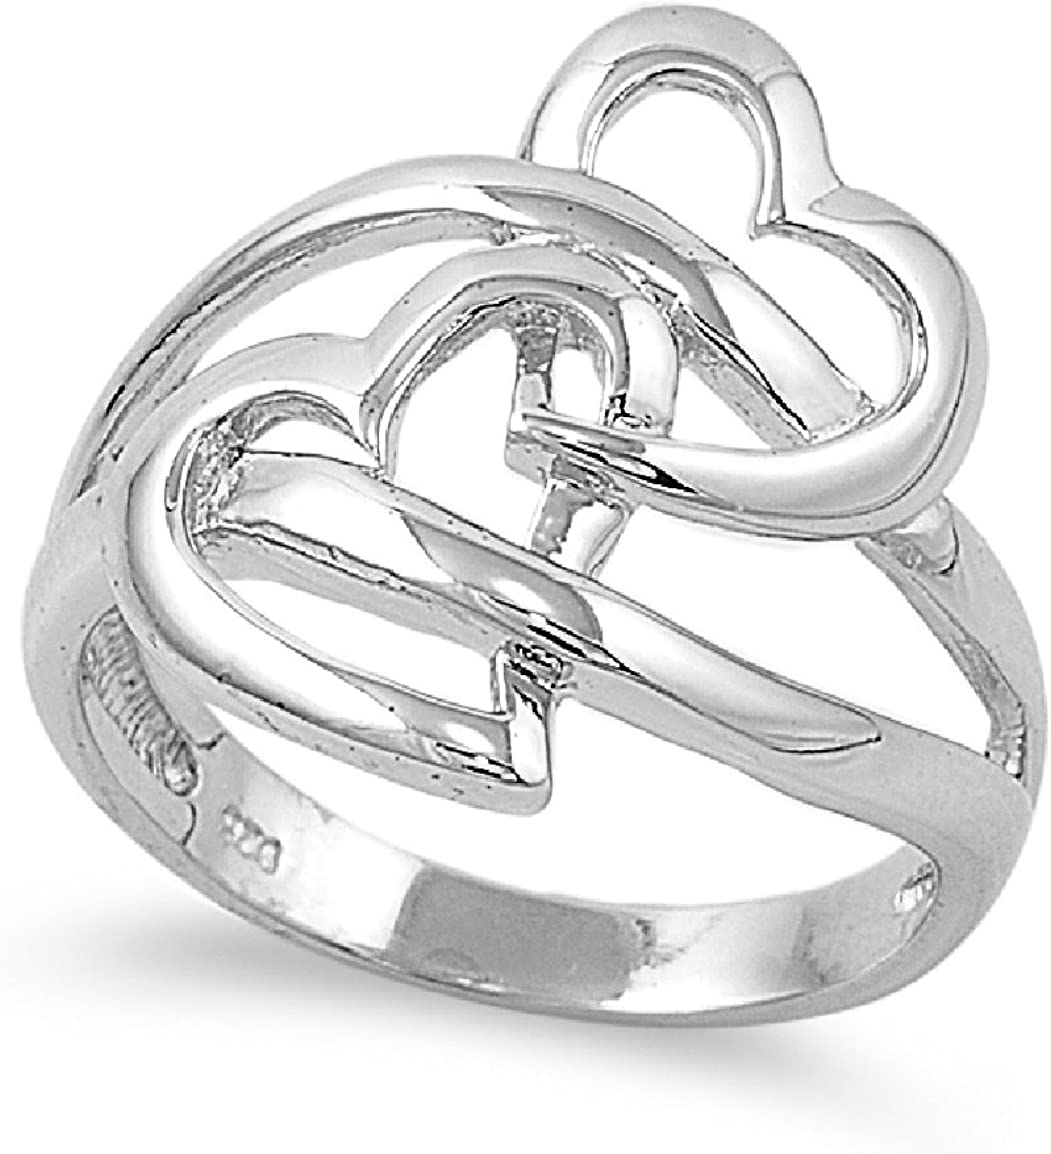 Princess Kylie 925 Sterling Silver Double Heart Design Ring